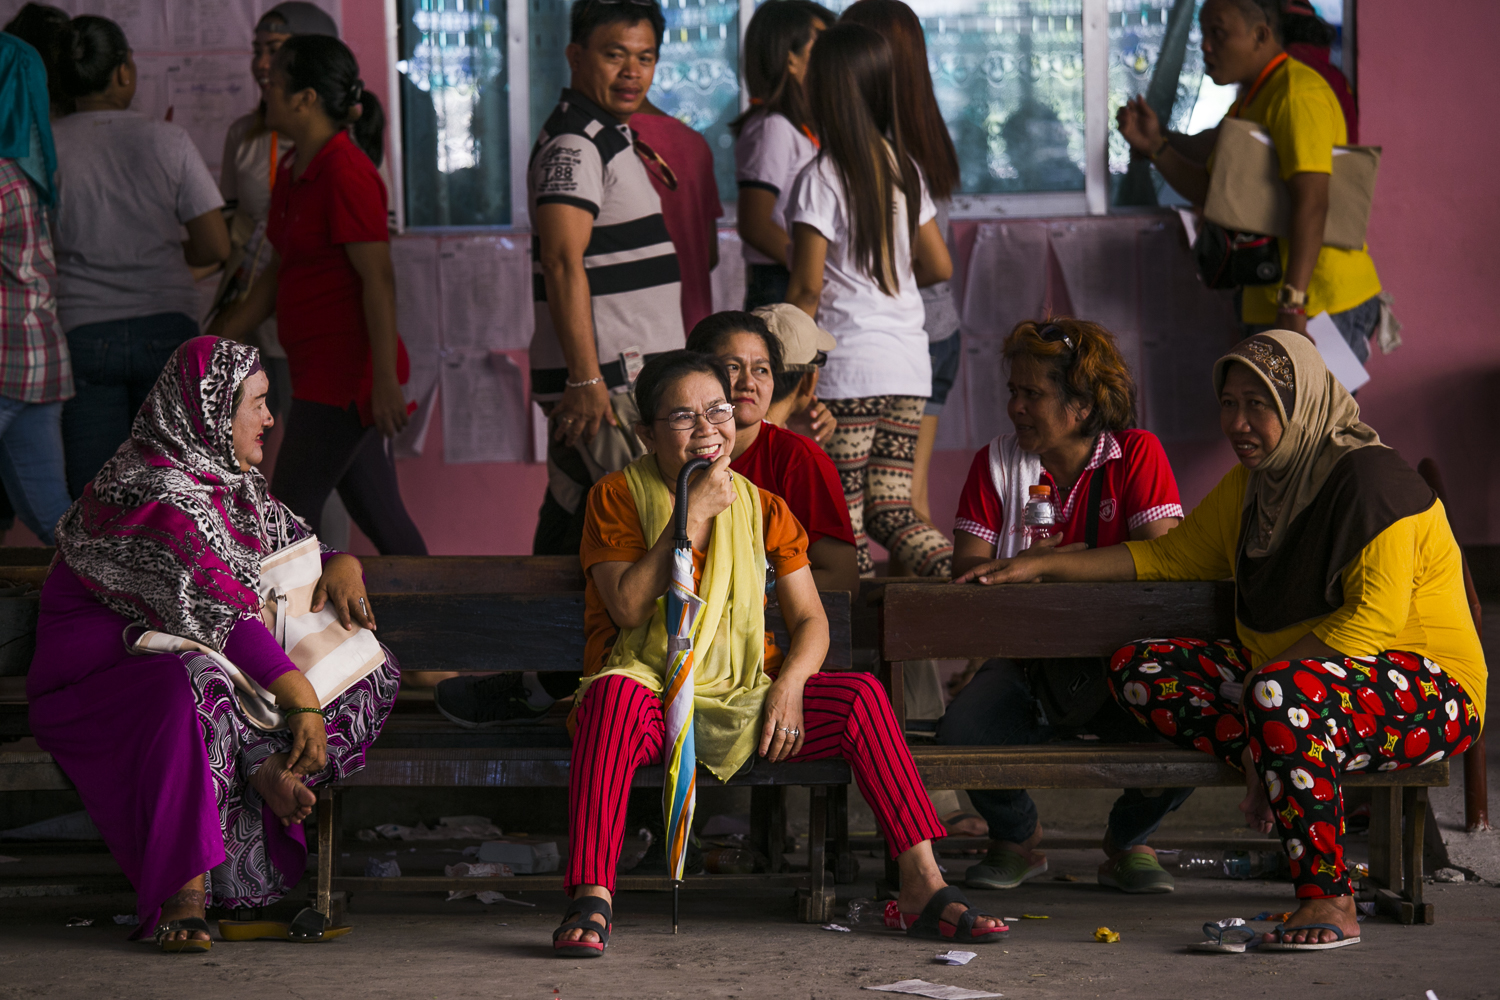 WAITING FOR THEIR TURN. Women wait in the open area of Maharlika Elementary school located in a predominantly Muslim community. Photo by Pat Nabong/Rappler